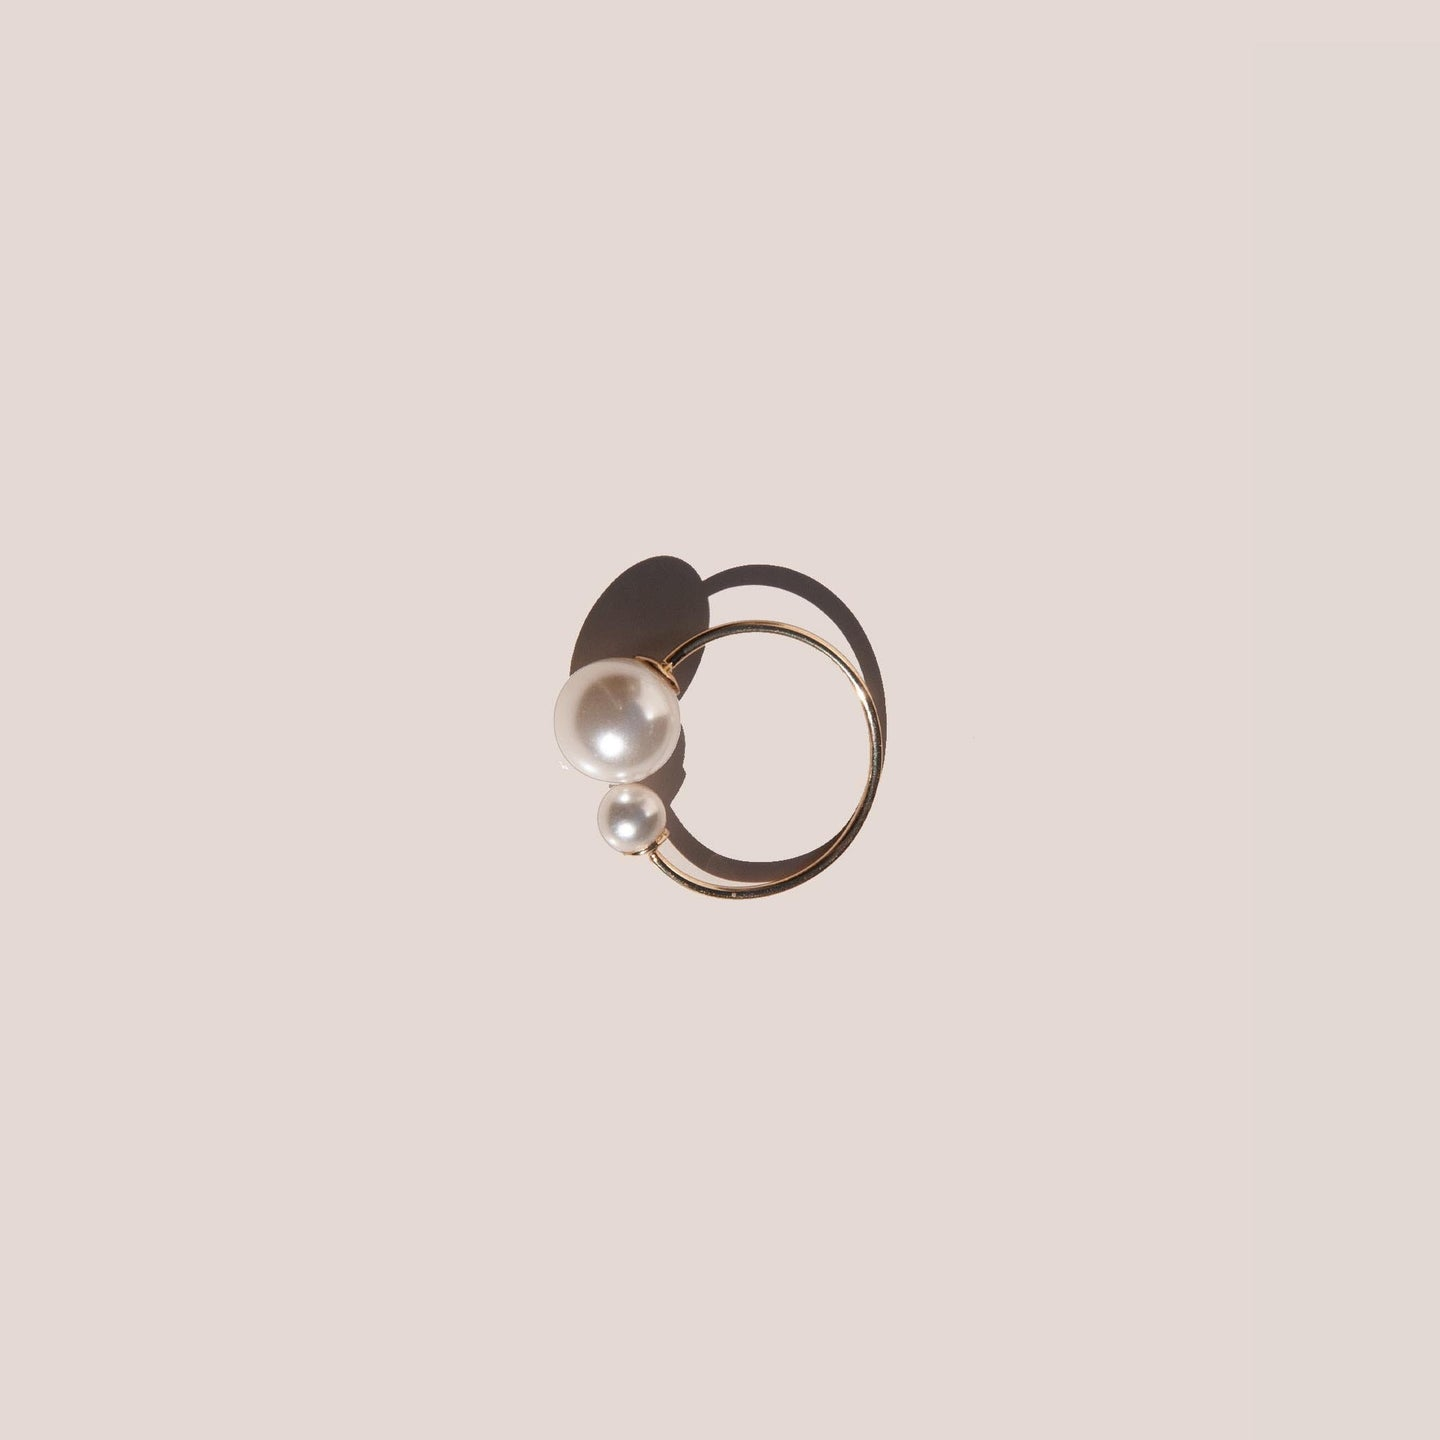 Gabriela Artigas - Asymmetric Suspended Pearl Ring, available at LCD.